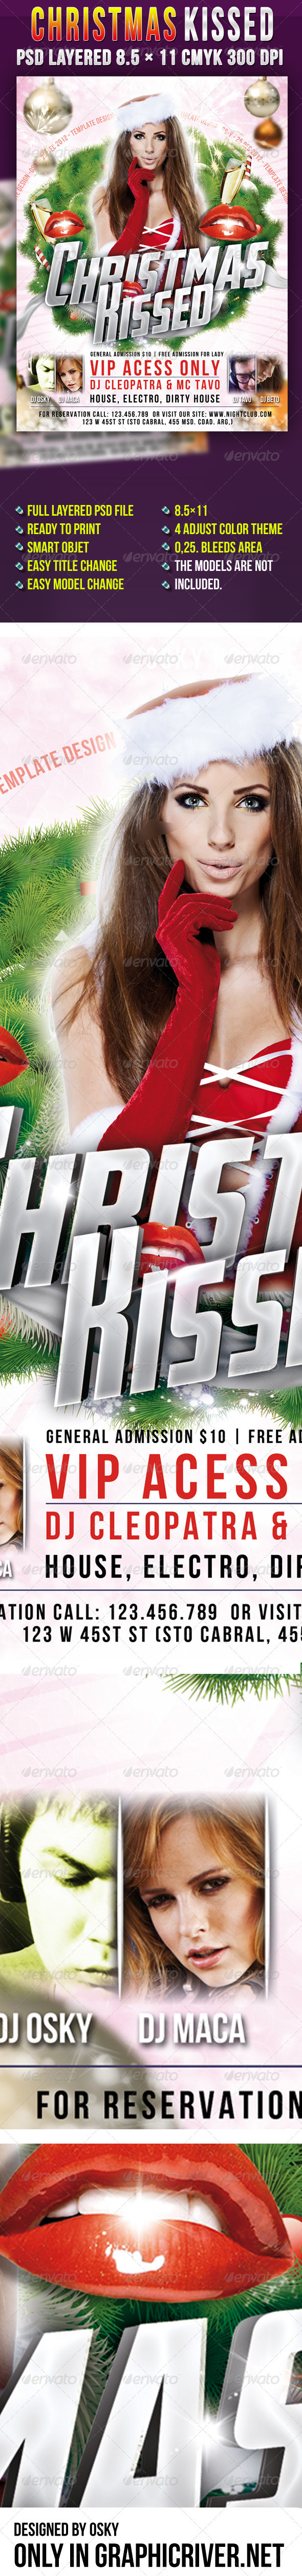 GraphicRiver Christmas Kissed Party 3537452